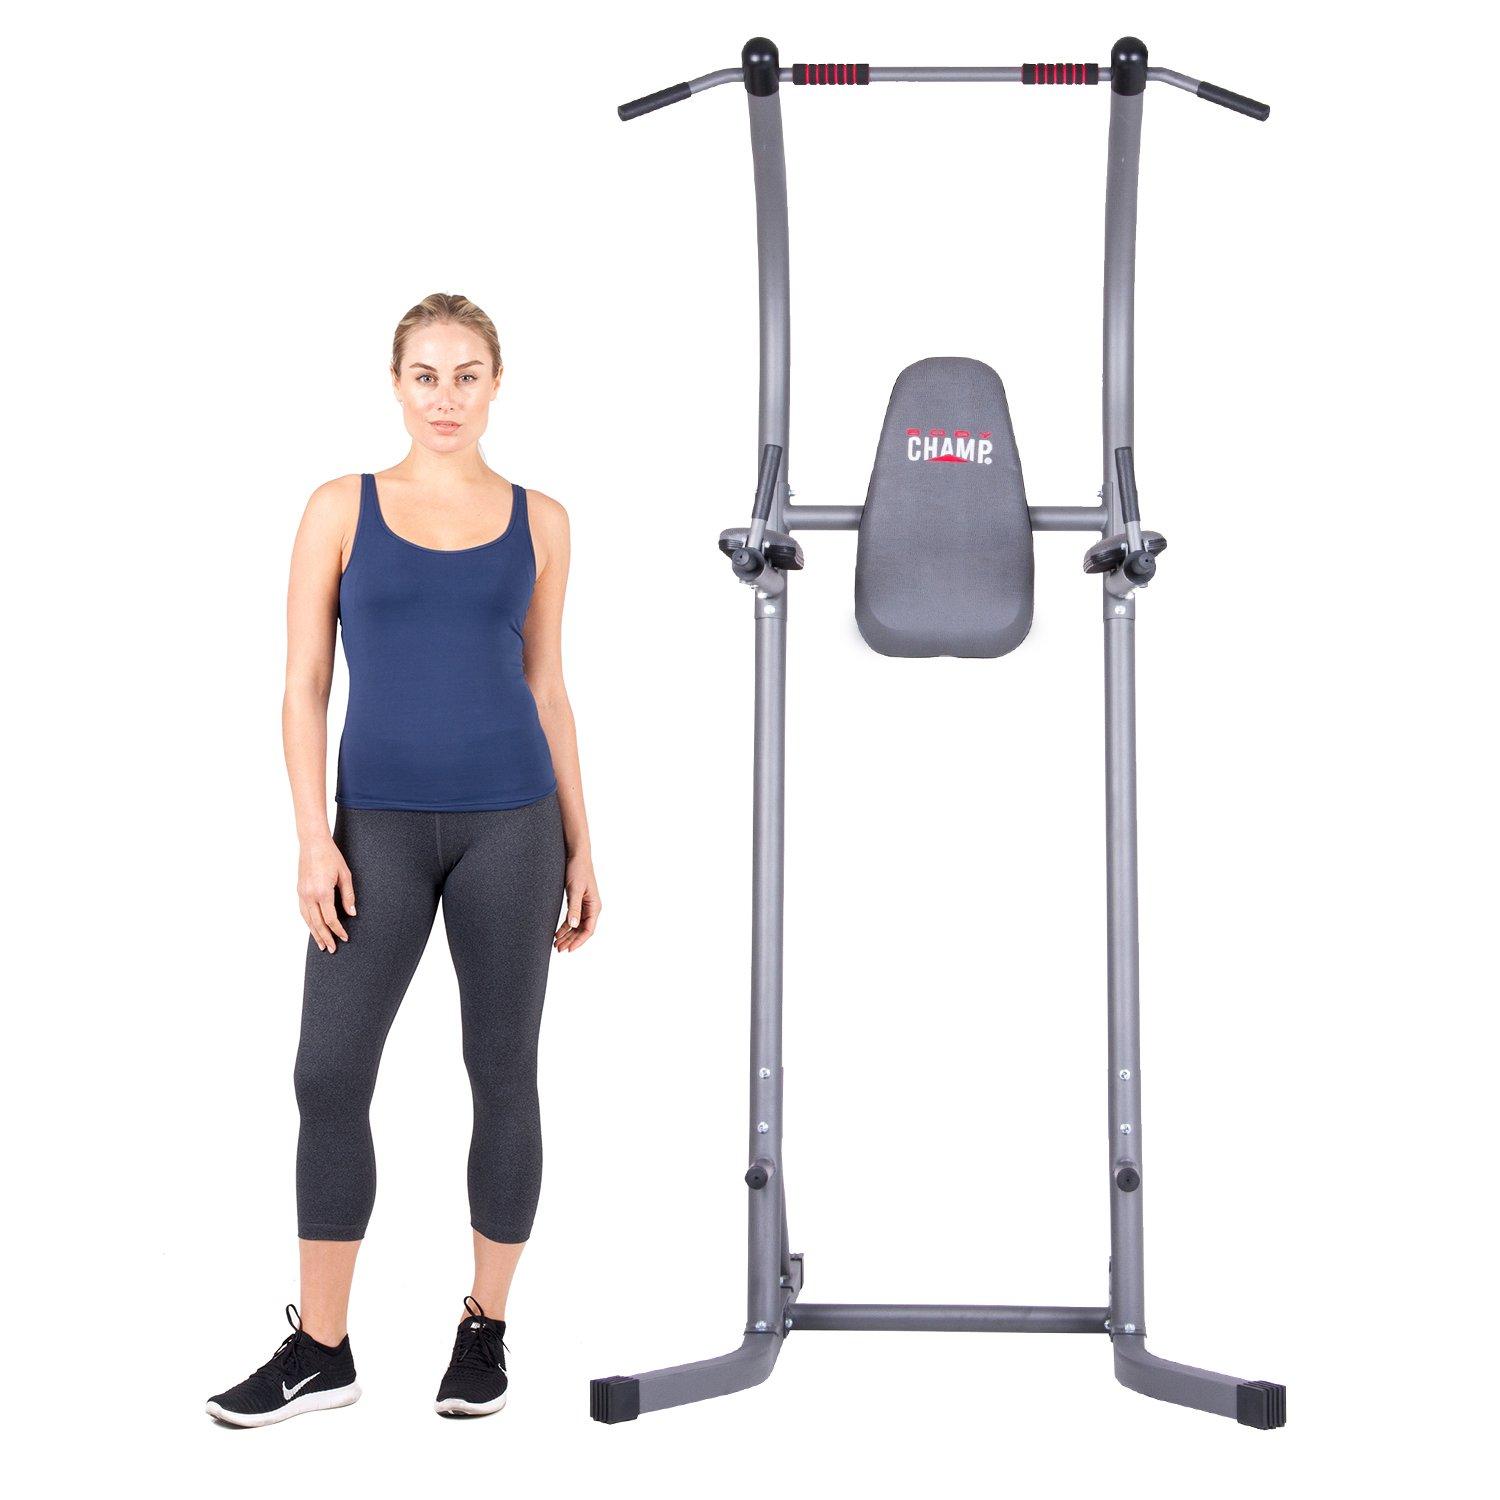 Body Champ PT620 Fitness Multifunction Power Tower (Best for Short People)